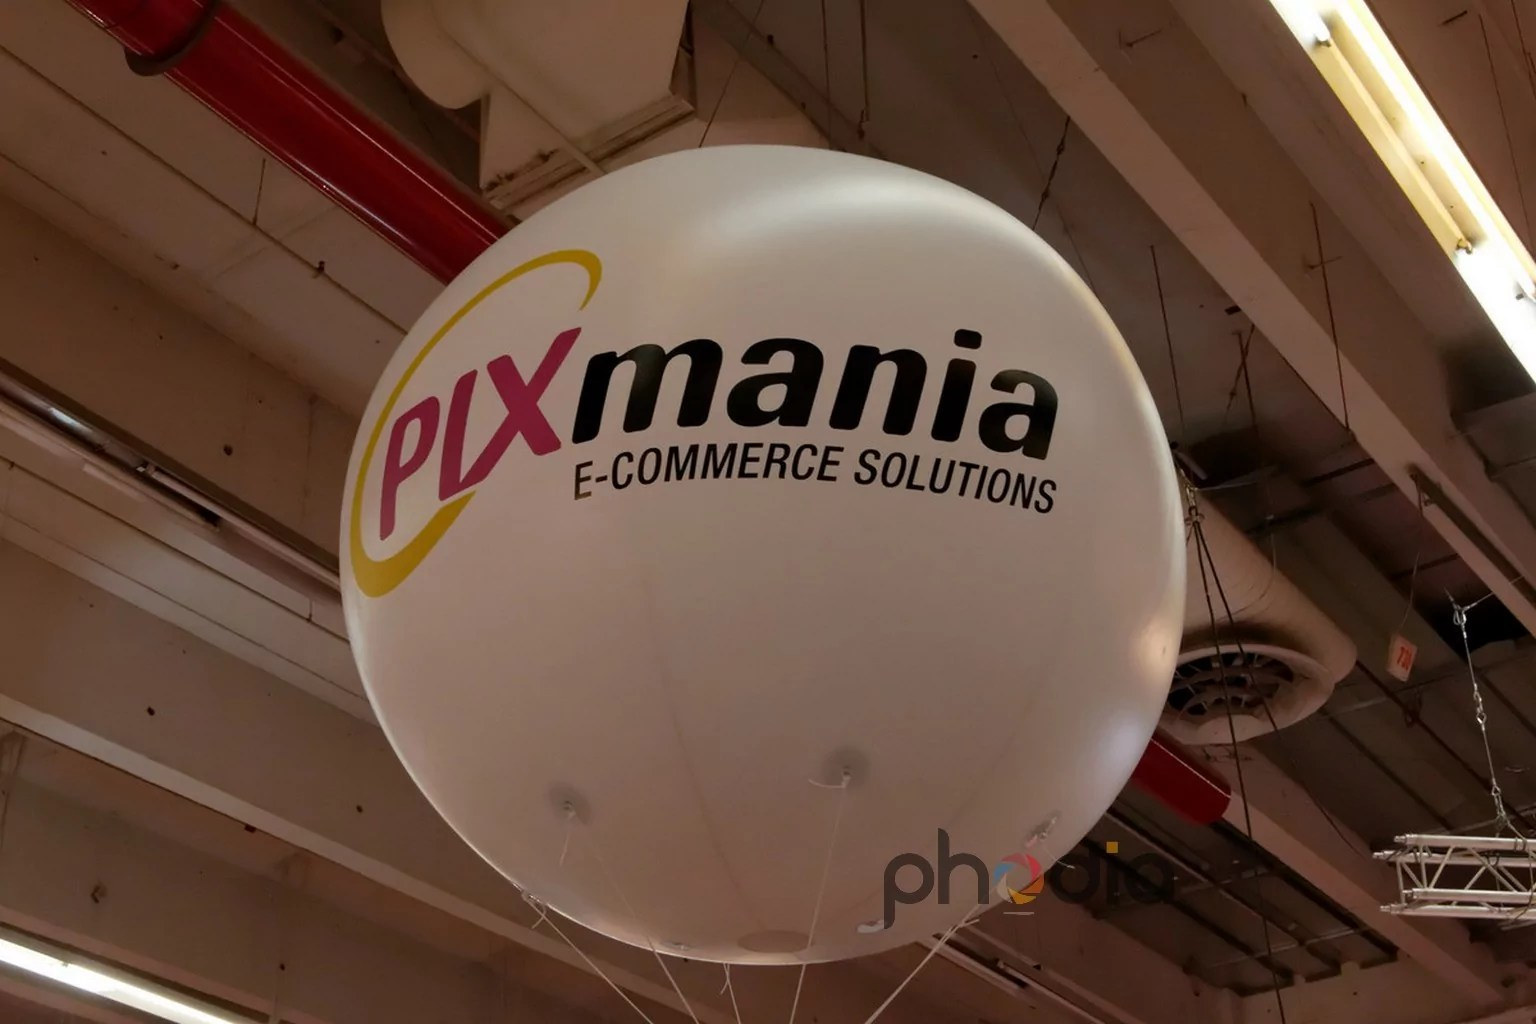 Gonflable publicitaire Pixmania au salon e-commerce 2011